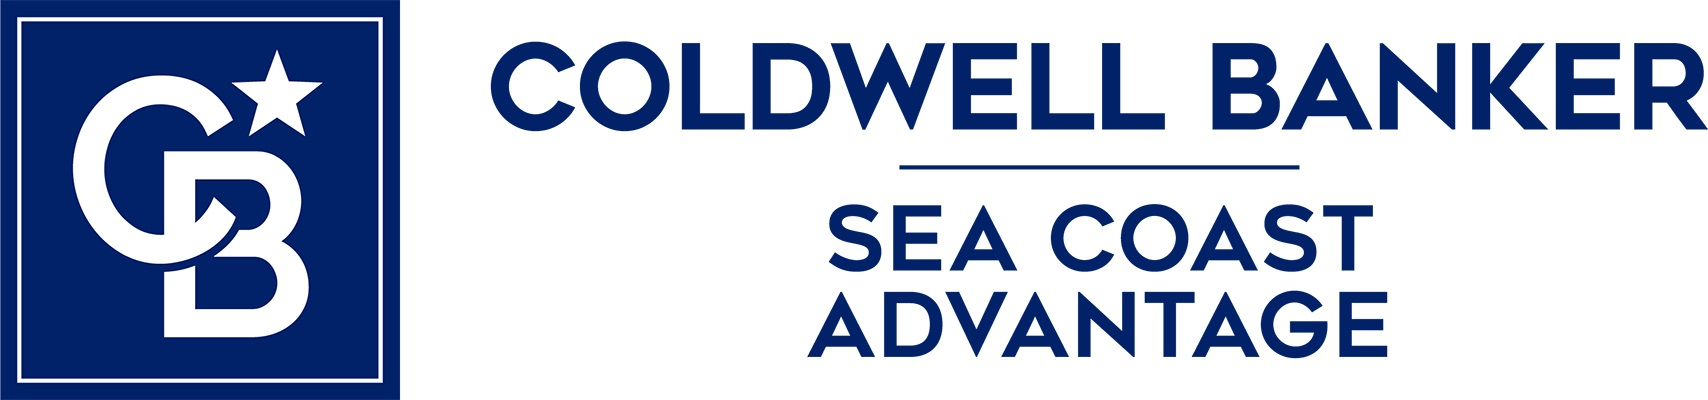 Josh Ausband - Coldwell Banker Sea Coast Advantage Realty